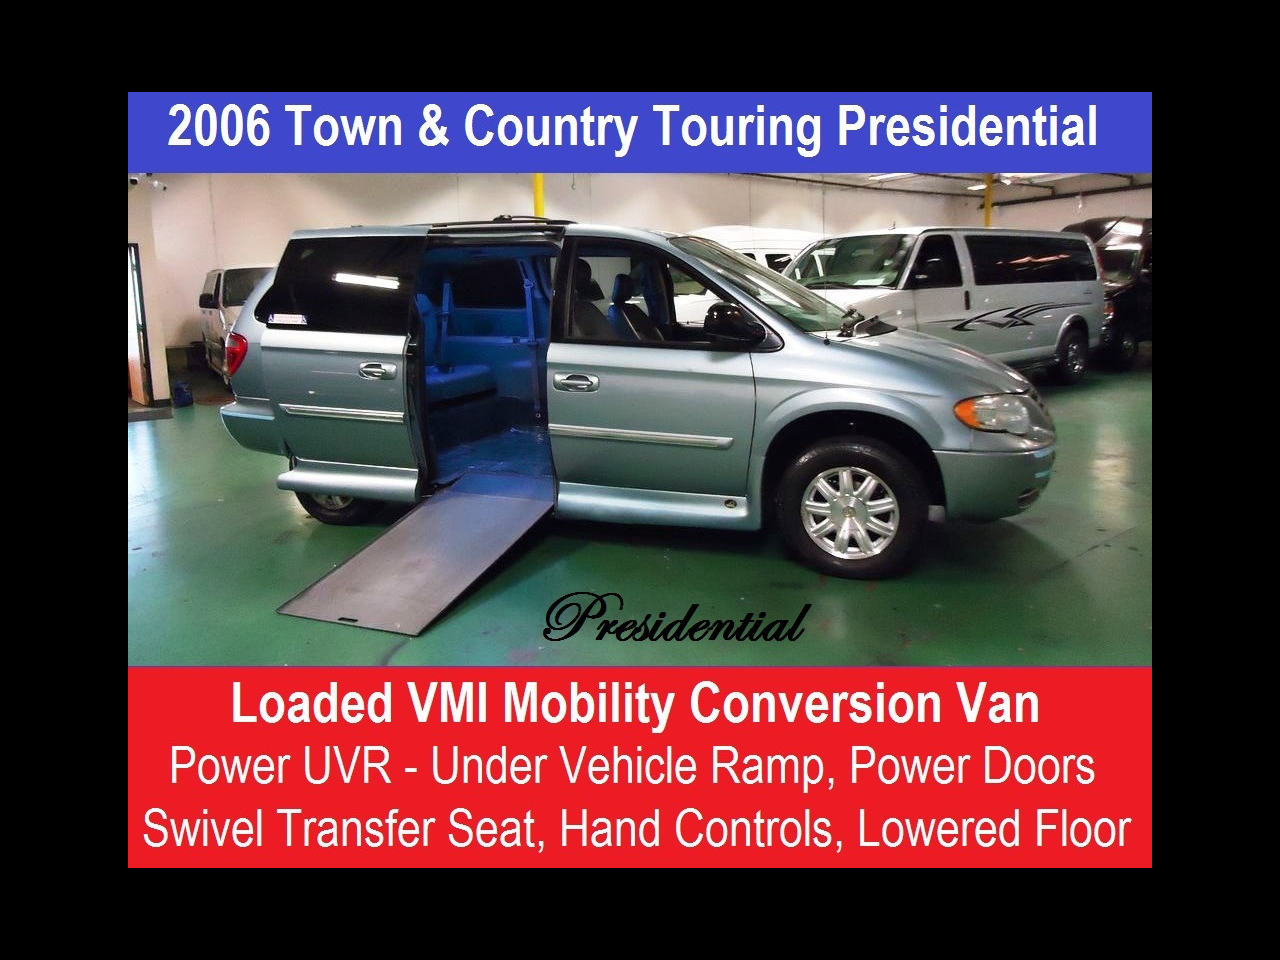 2006 Chrysler Town and Country Presidential Complete Mobility Handicap Conversion